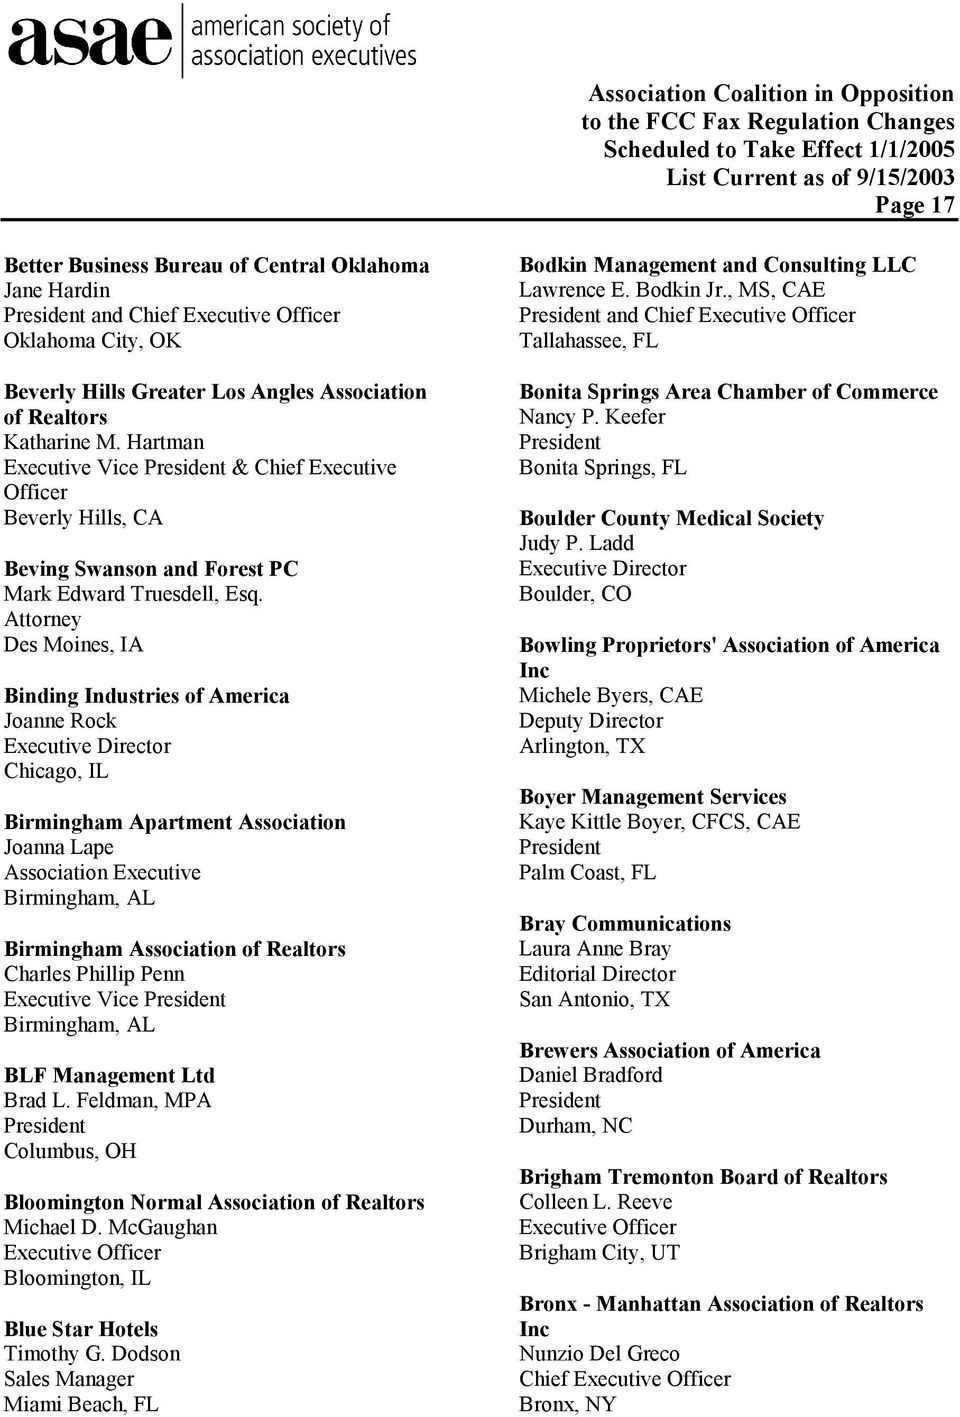 Attorney Des Moines, IA Binding Industries of America Joanne Rock Chicago, IL Birmingham Apartment Joanna Lape Executive Birmingham, AL Birmingham of Realtors Charles Phillip Penn Birmingham, AL BLF